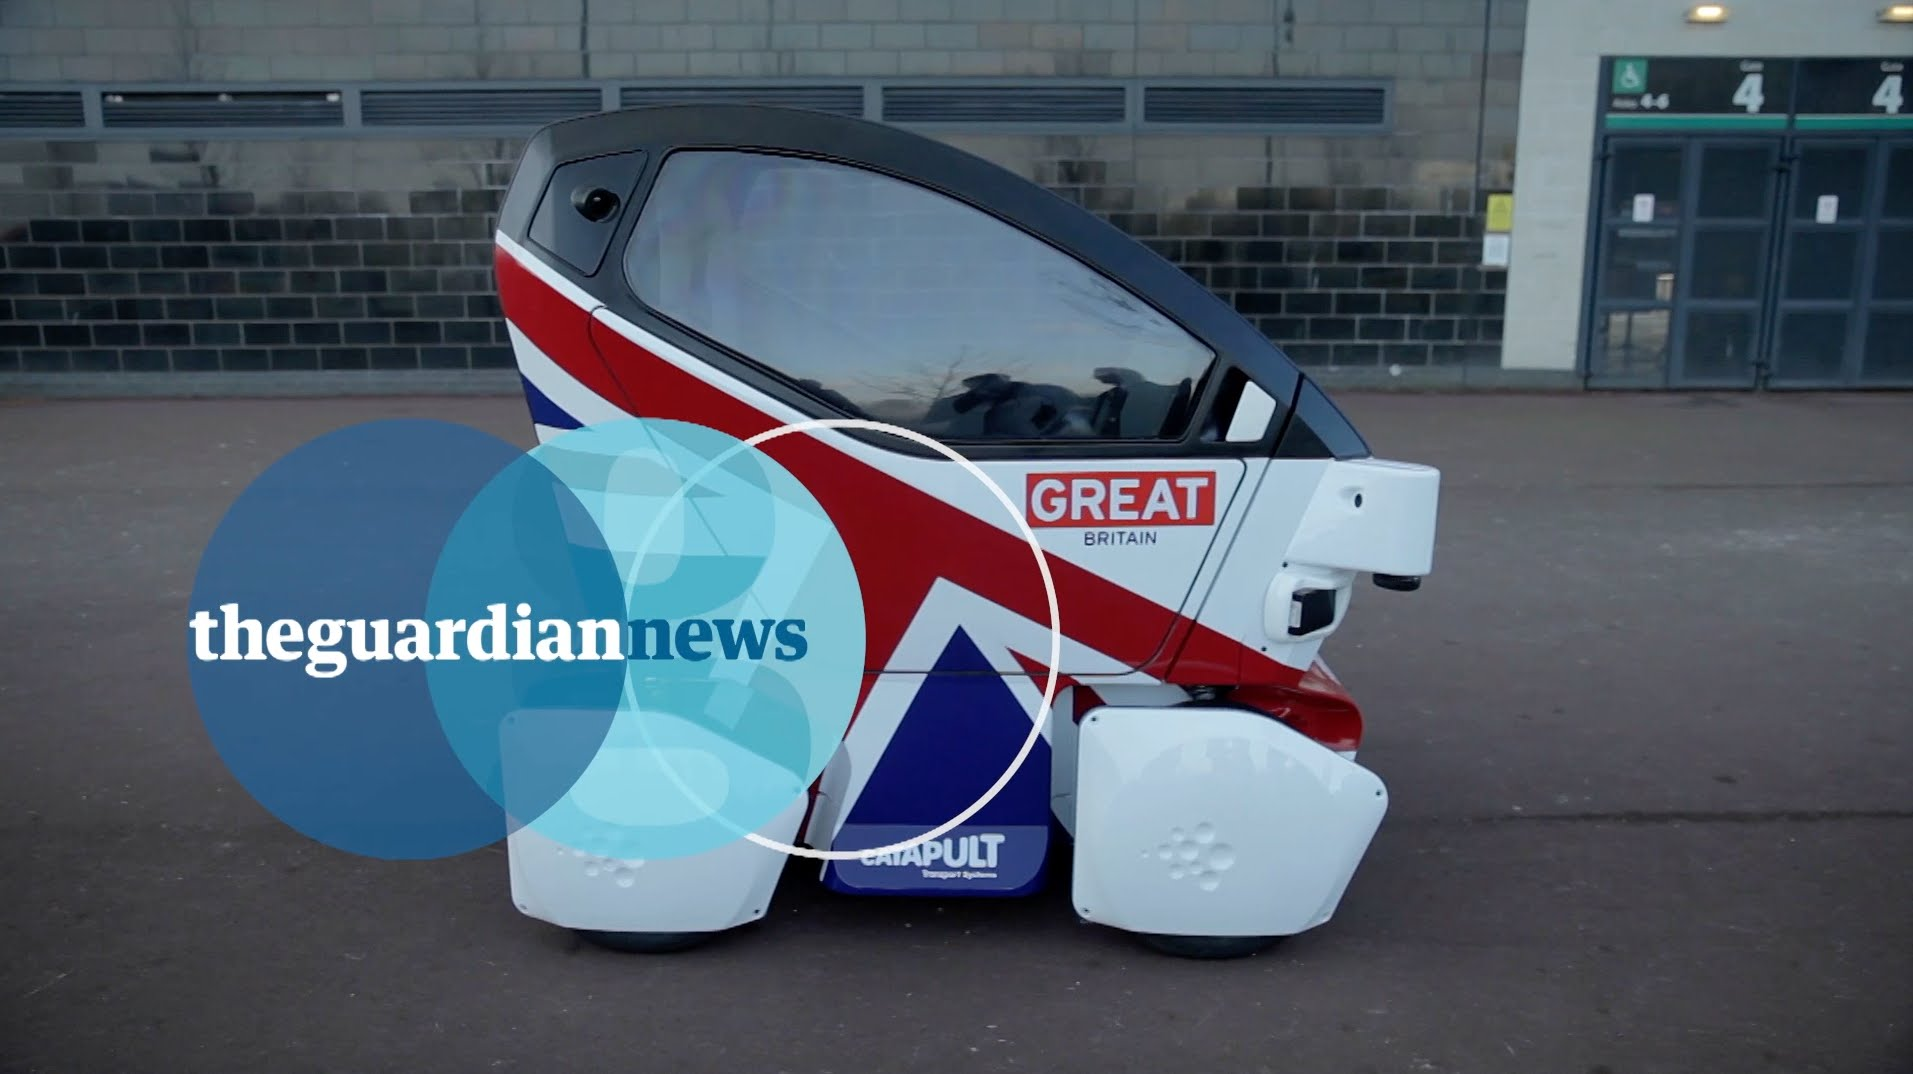 Driverless cars hit the roads in UK cities